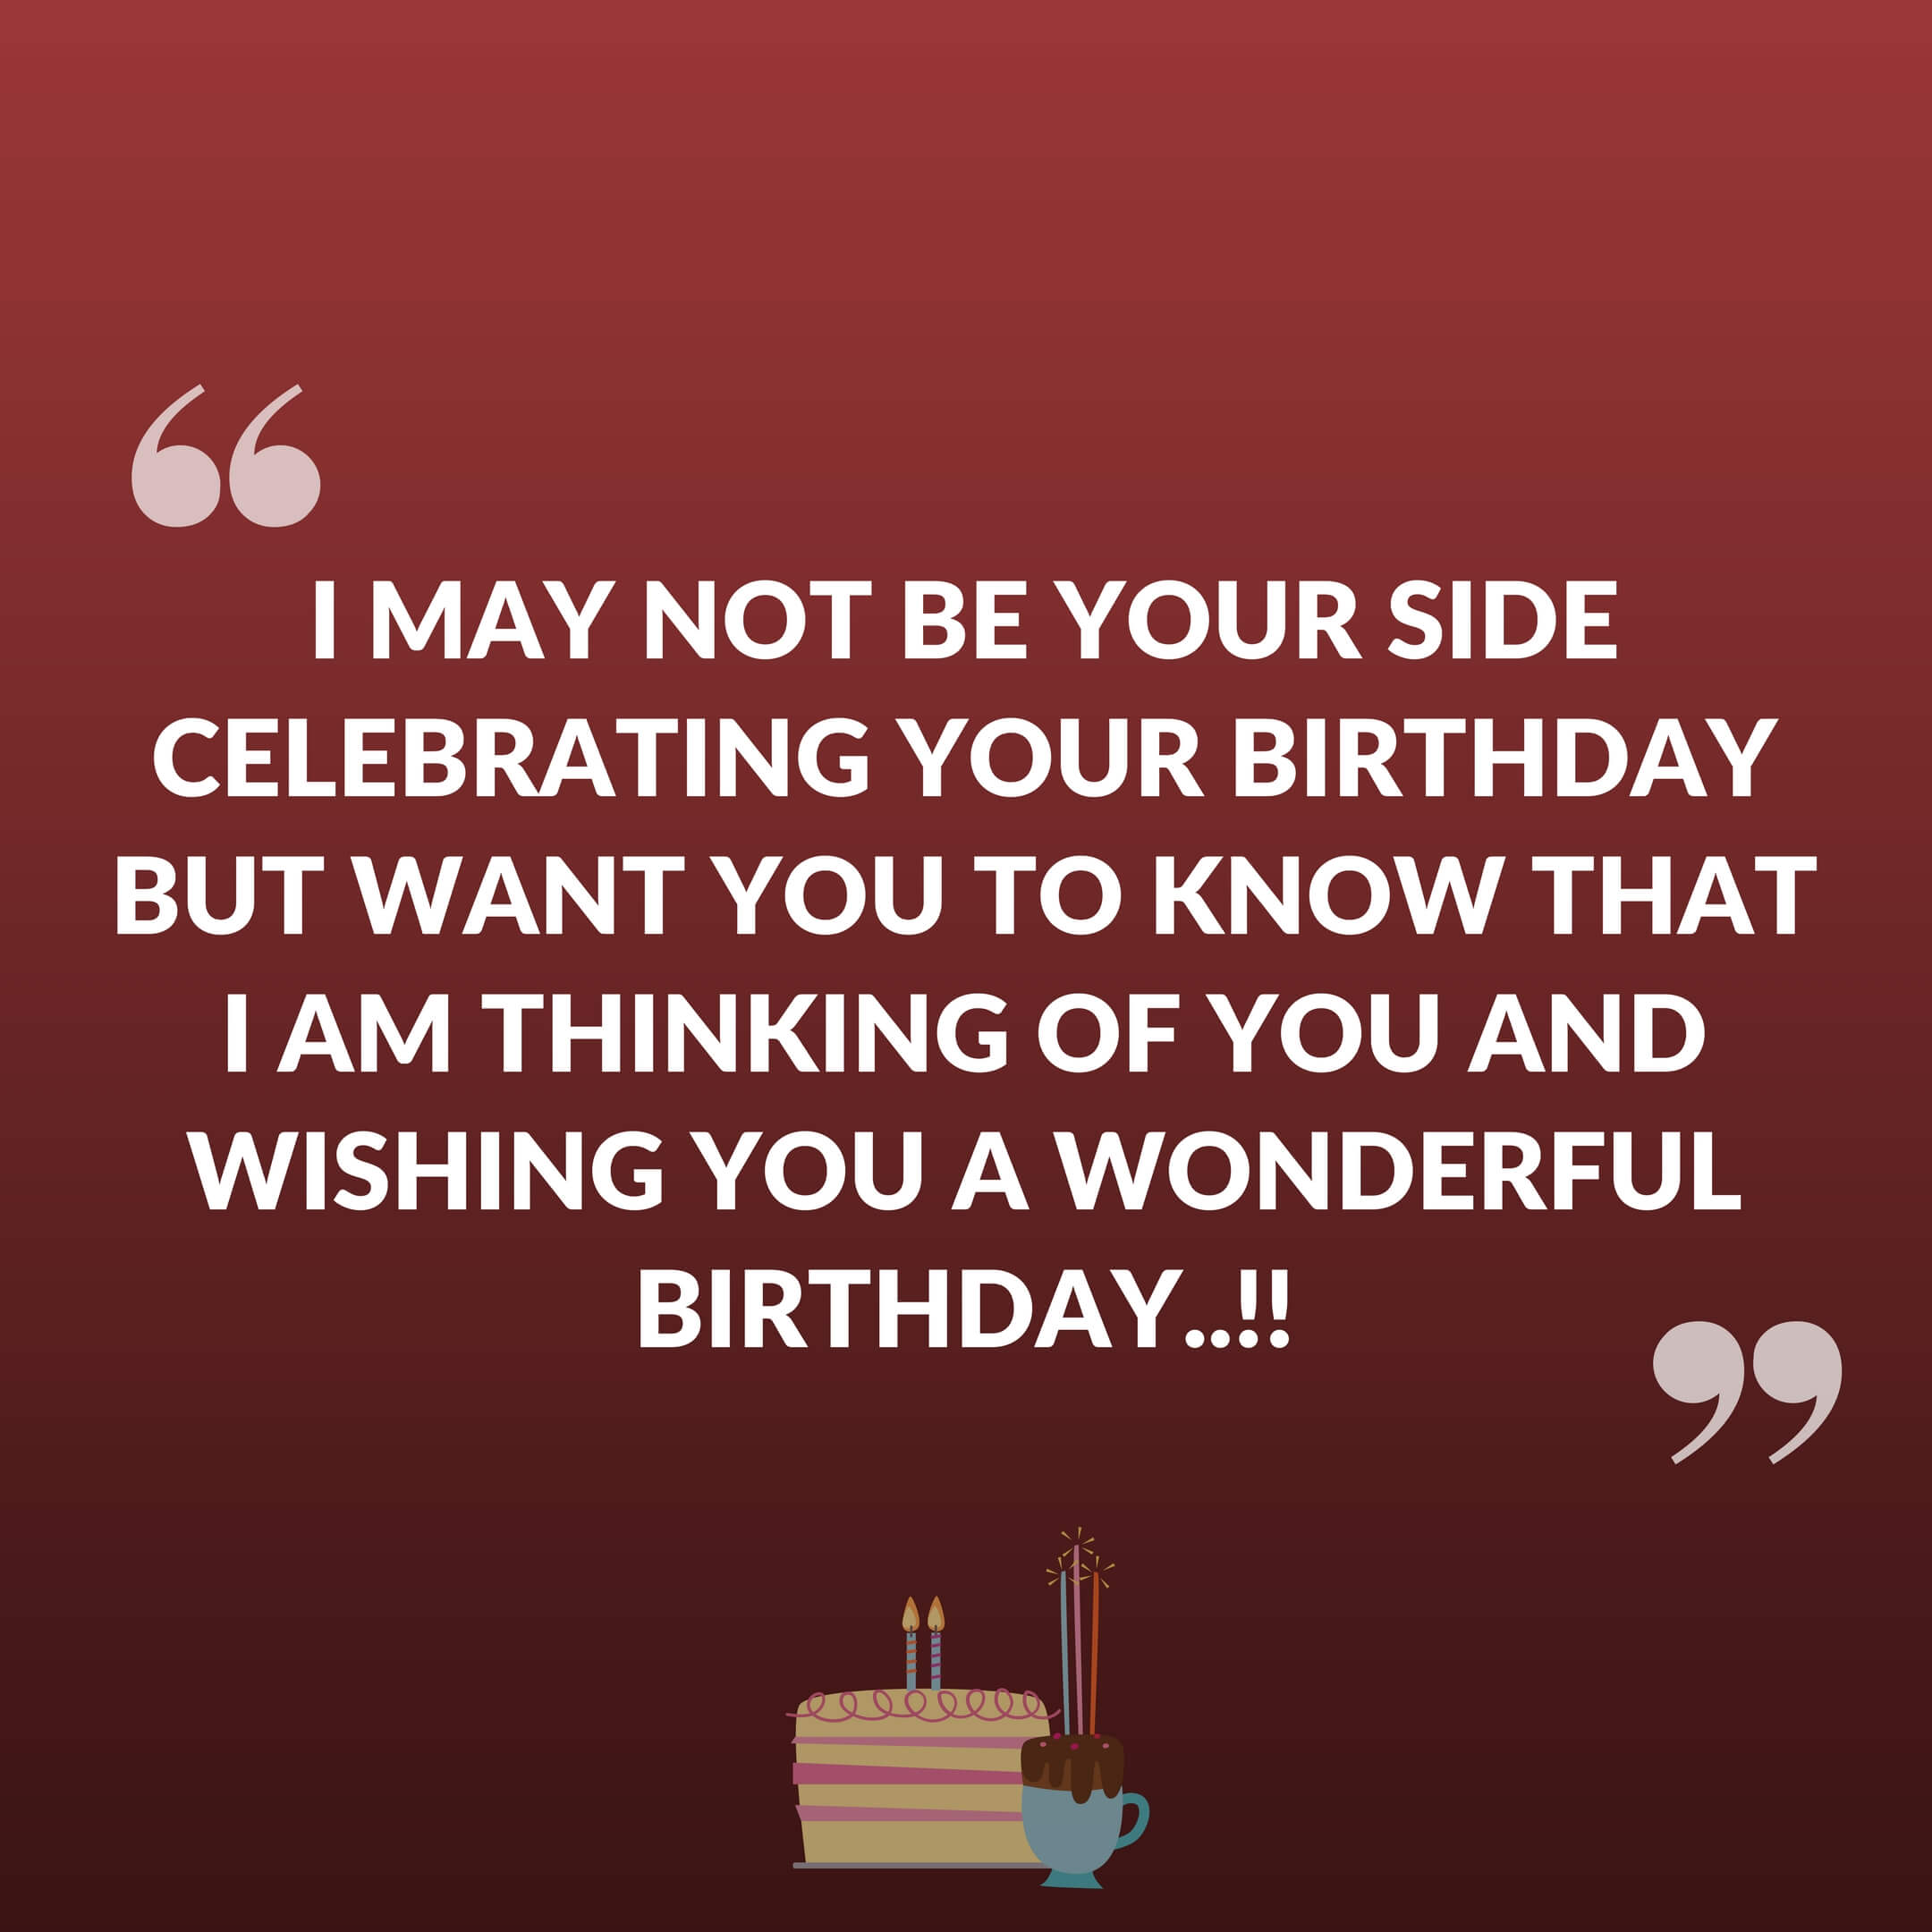 Birthday wishes picture quotes find best birthday wishes picture birthday wishes picture quotes m4hsunfo